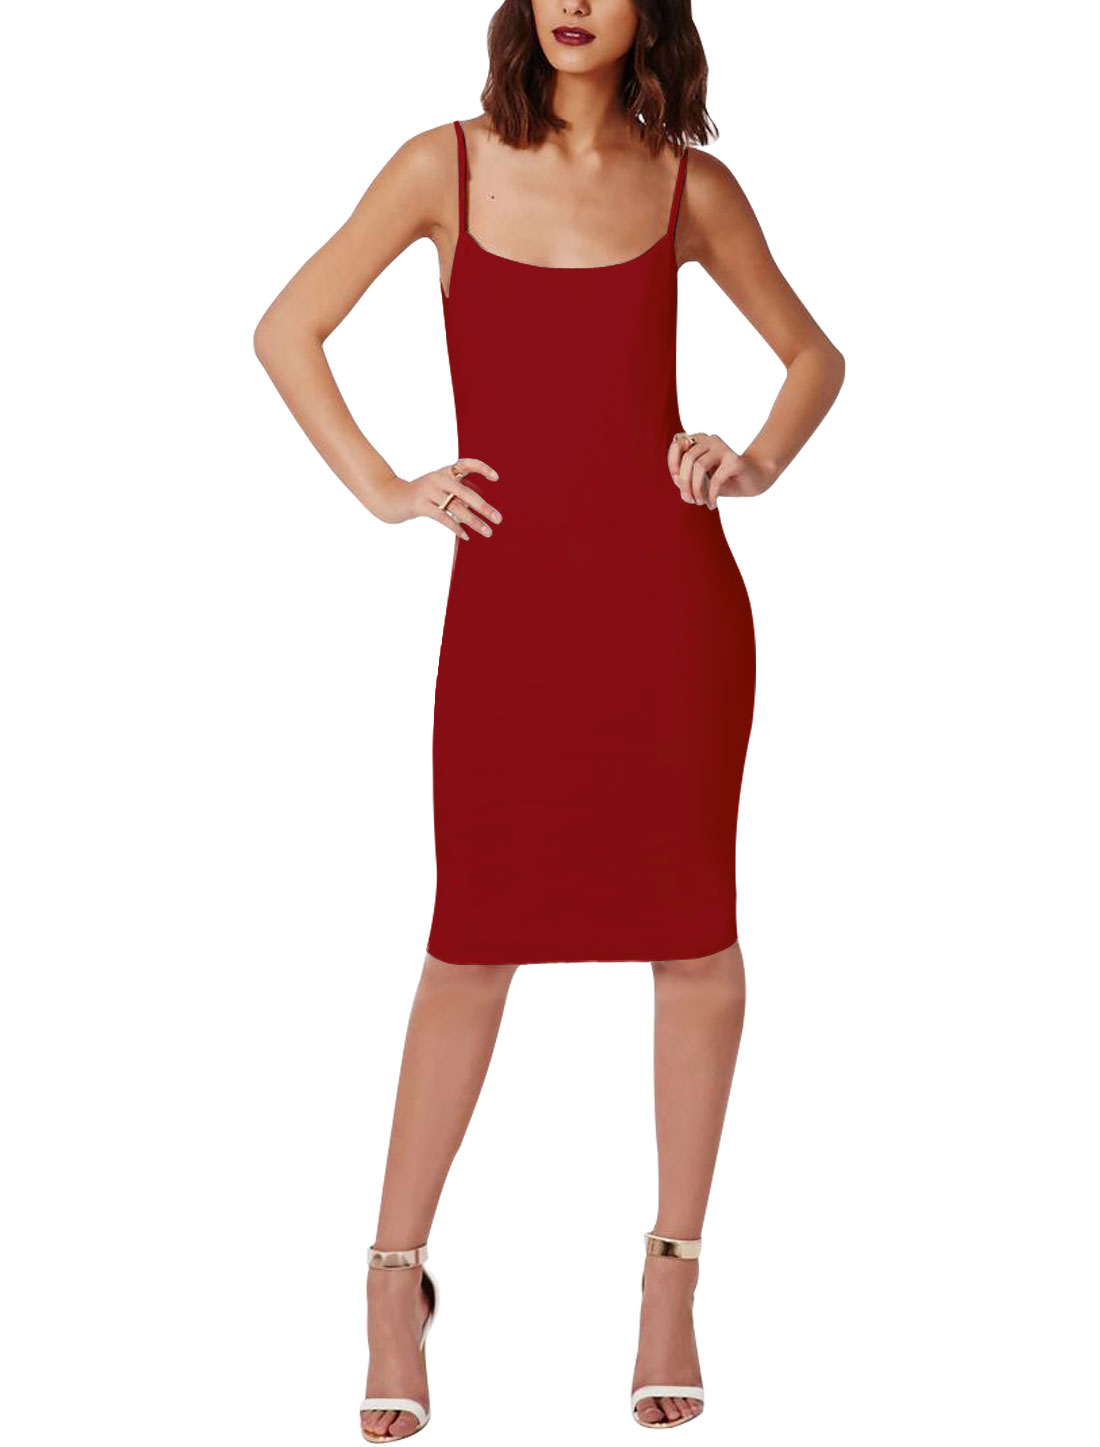 Women Scoop Neck Backless Spaghetti Straps Wiggle Dress Warm Red M